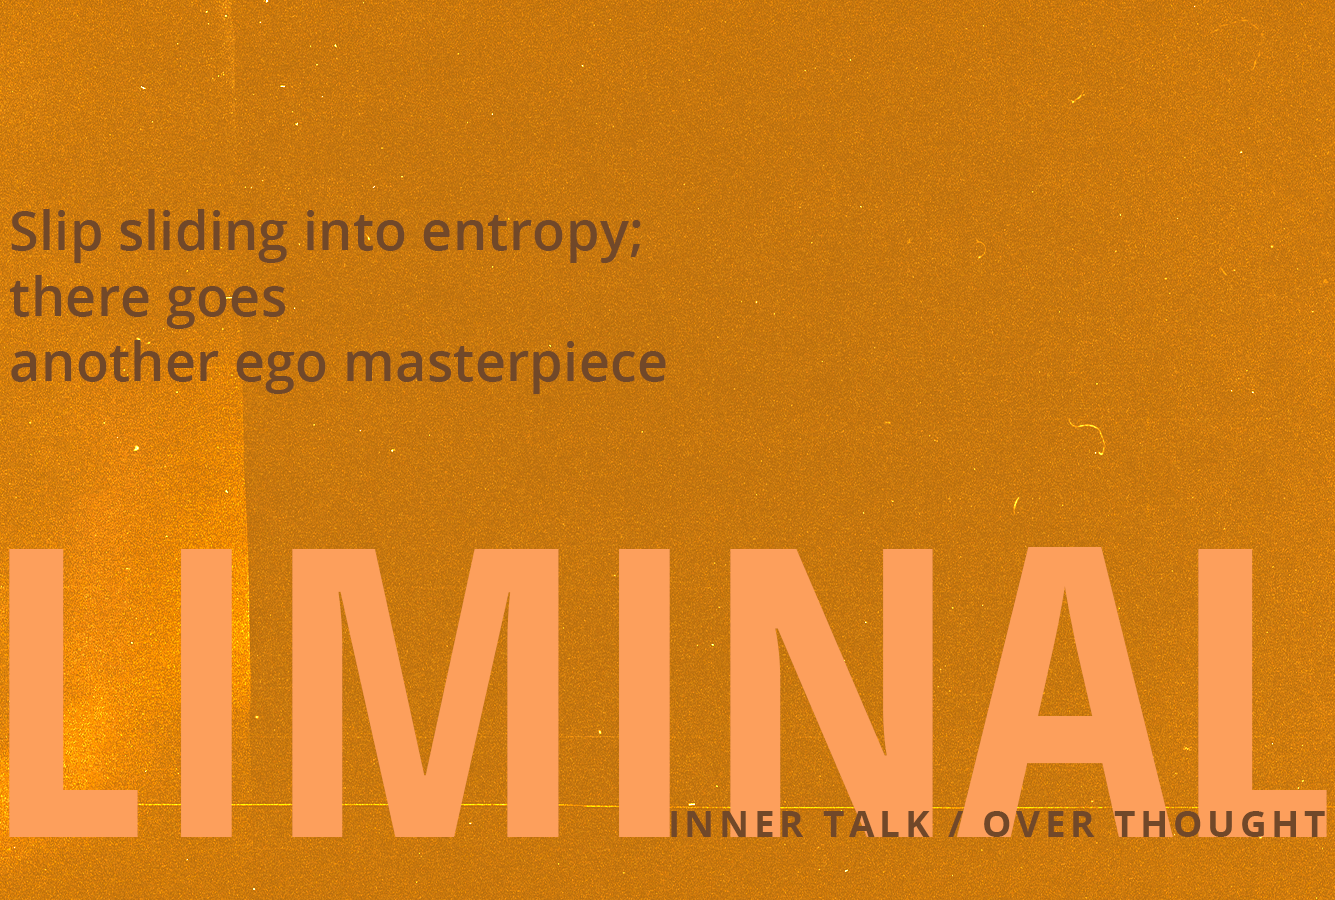 Song Spotlight: Liminal – Inner Talk/Over Thought